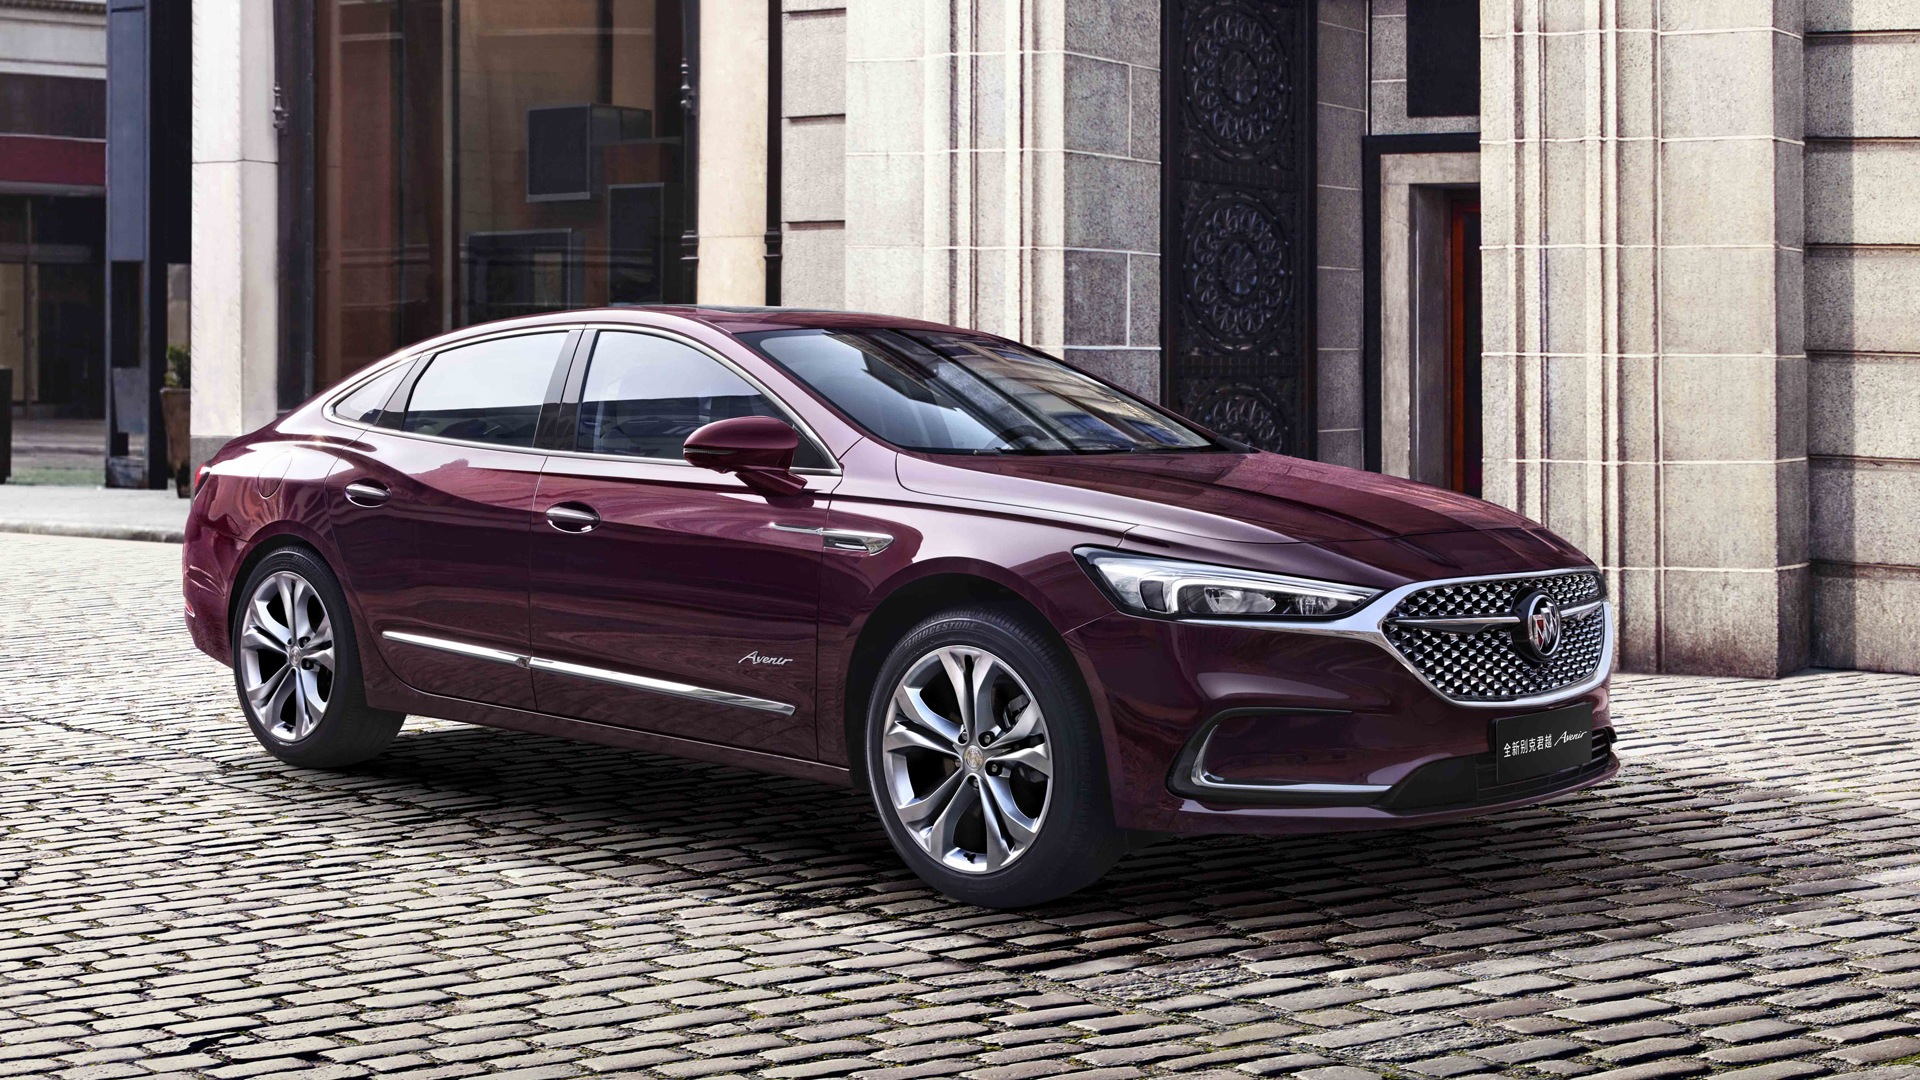 2020 Buick Lacrosse Made Handsome Just As It's Dropped In Us 2021 Buick Lacrosse Images, Inside, Length